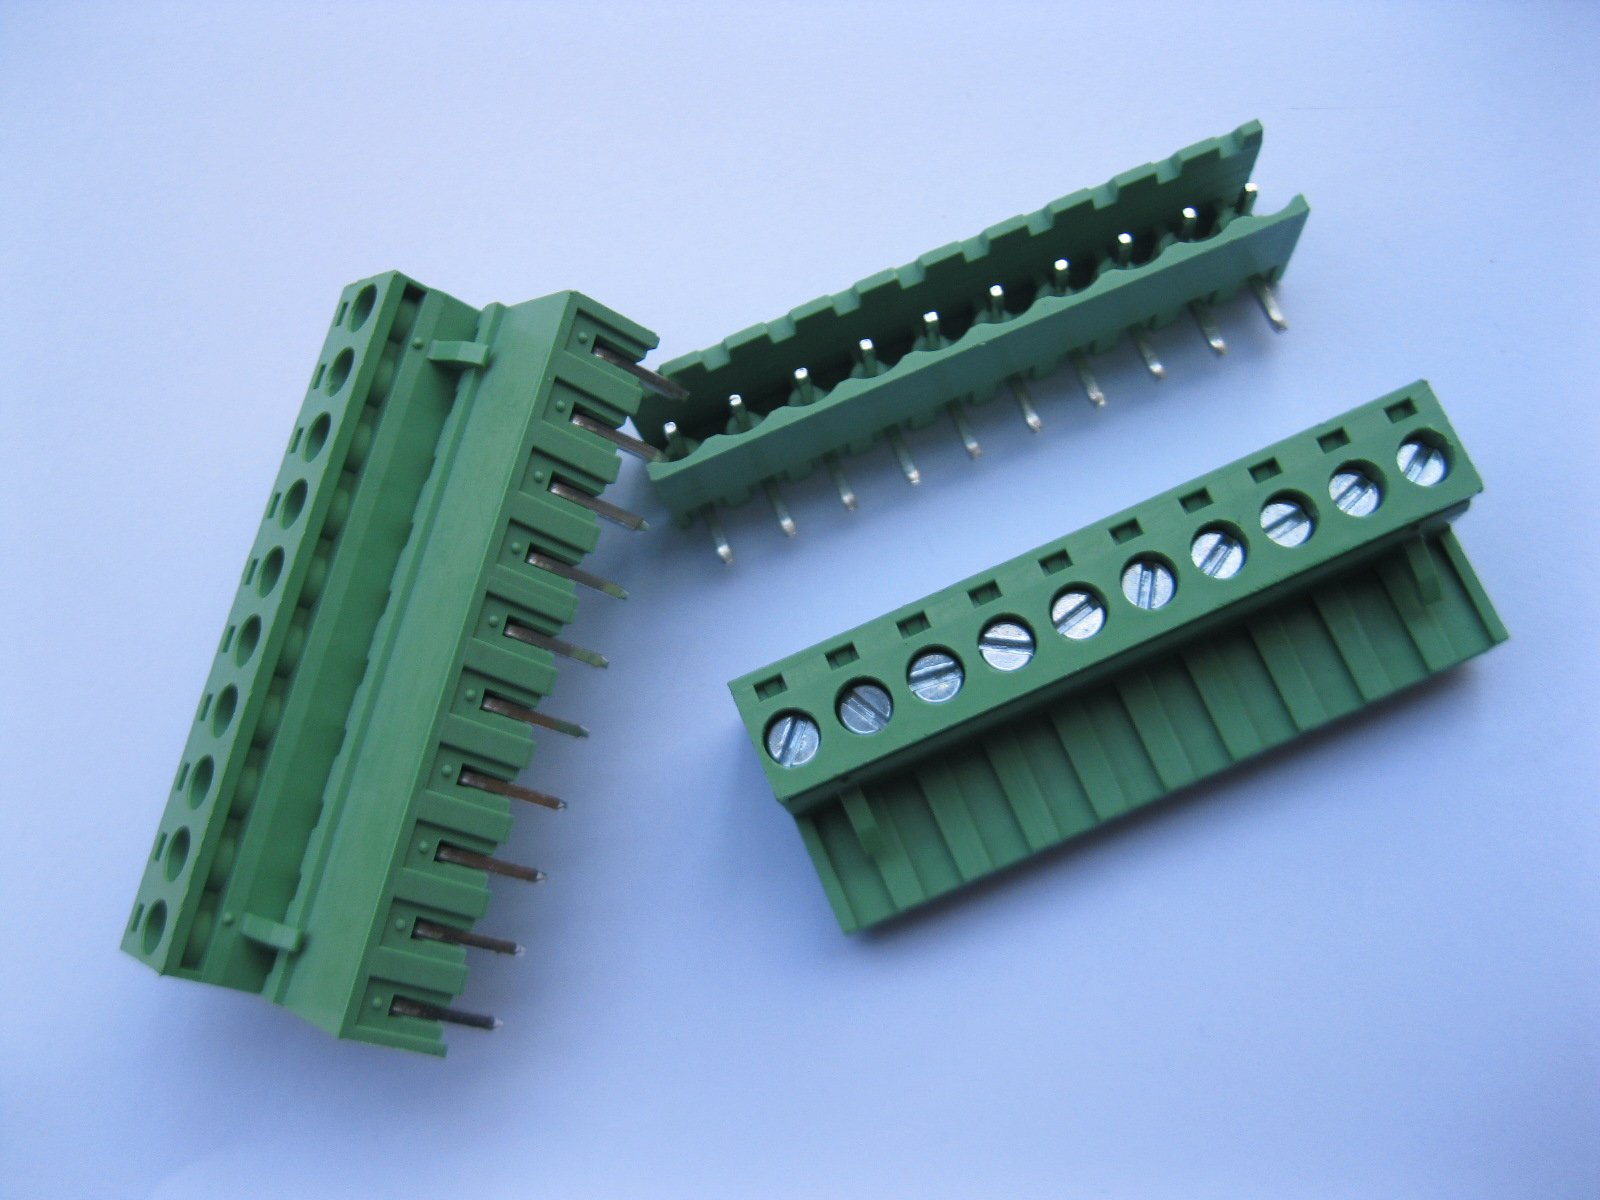 5 Pcs Pitch 5.08mm Angle 10way/pin Screw Terminal Block Connector w/ Angle-pin Green Color Pluggable Type Skywalking